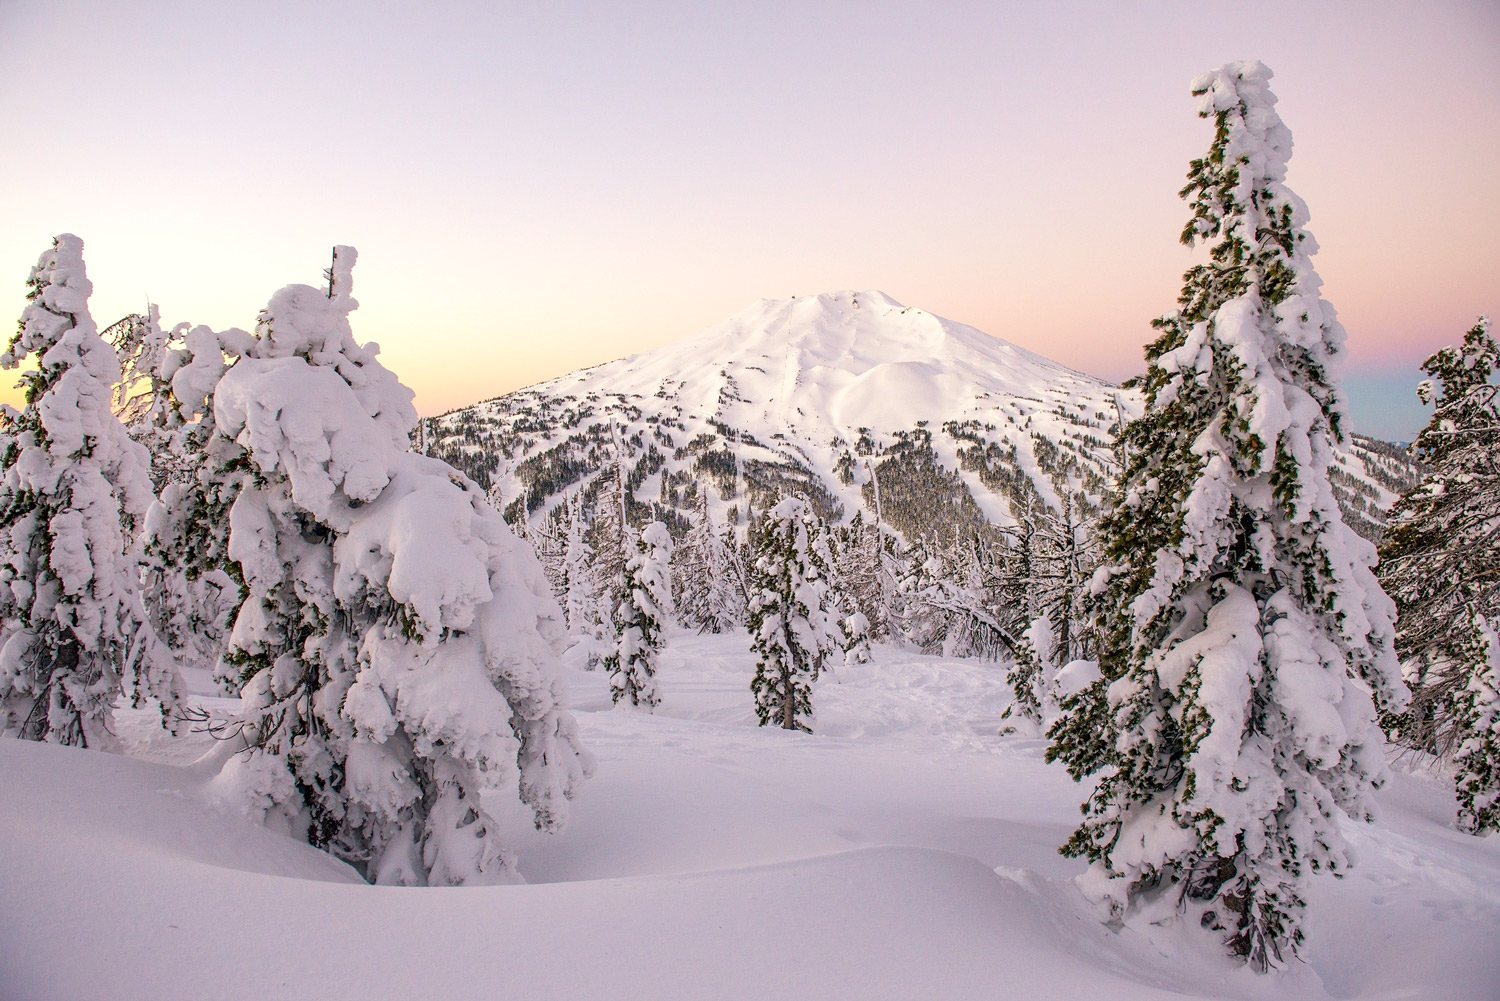 Winter views in the Cascades